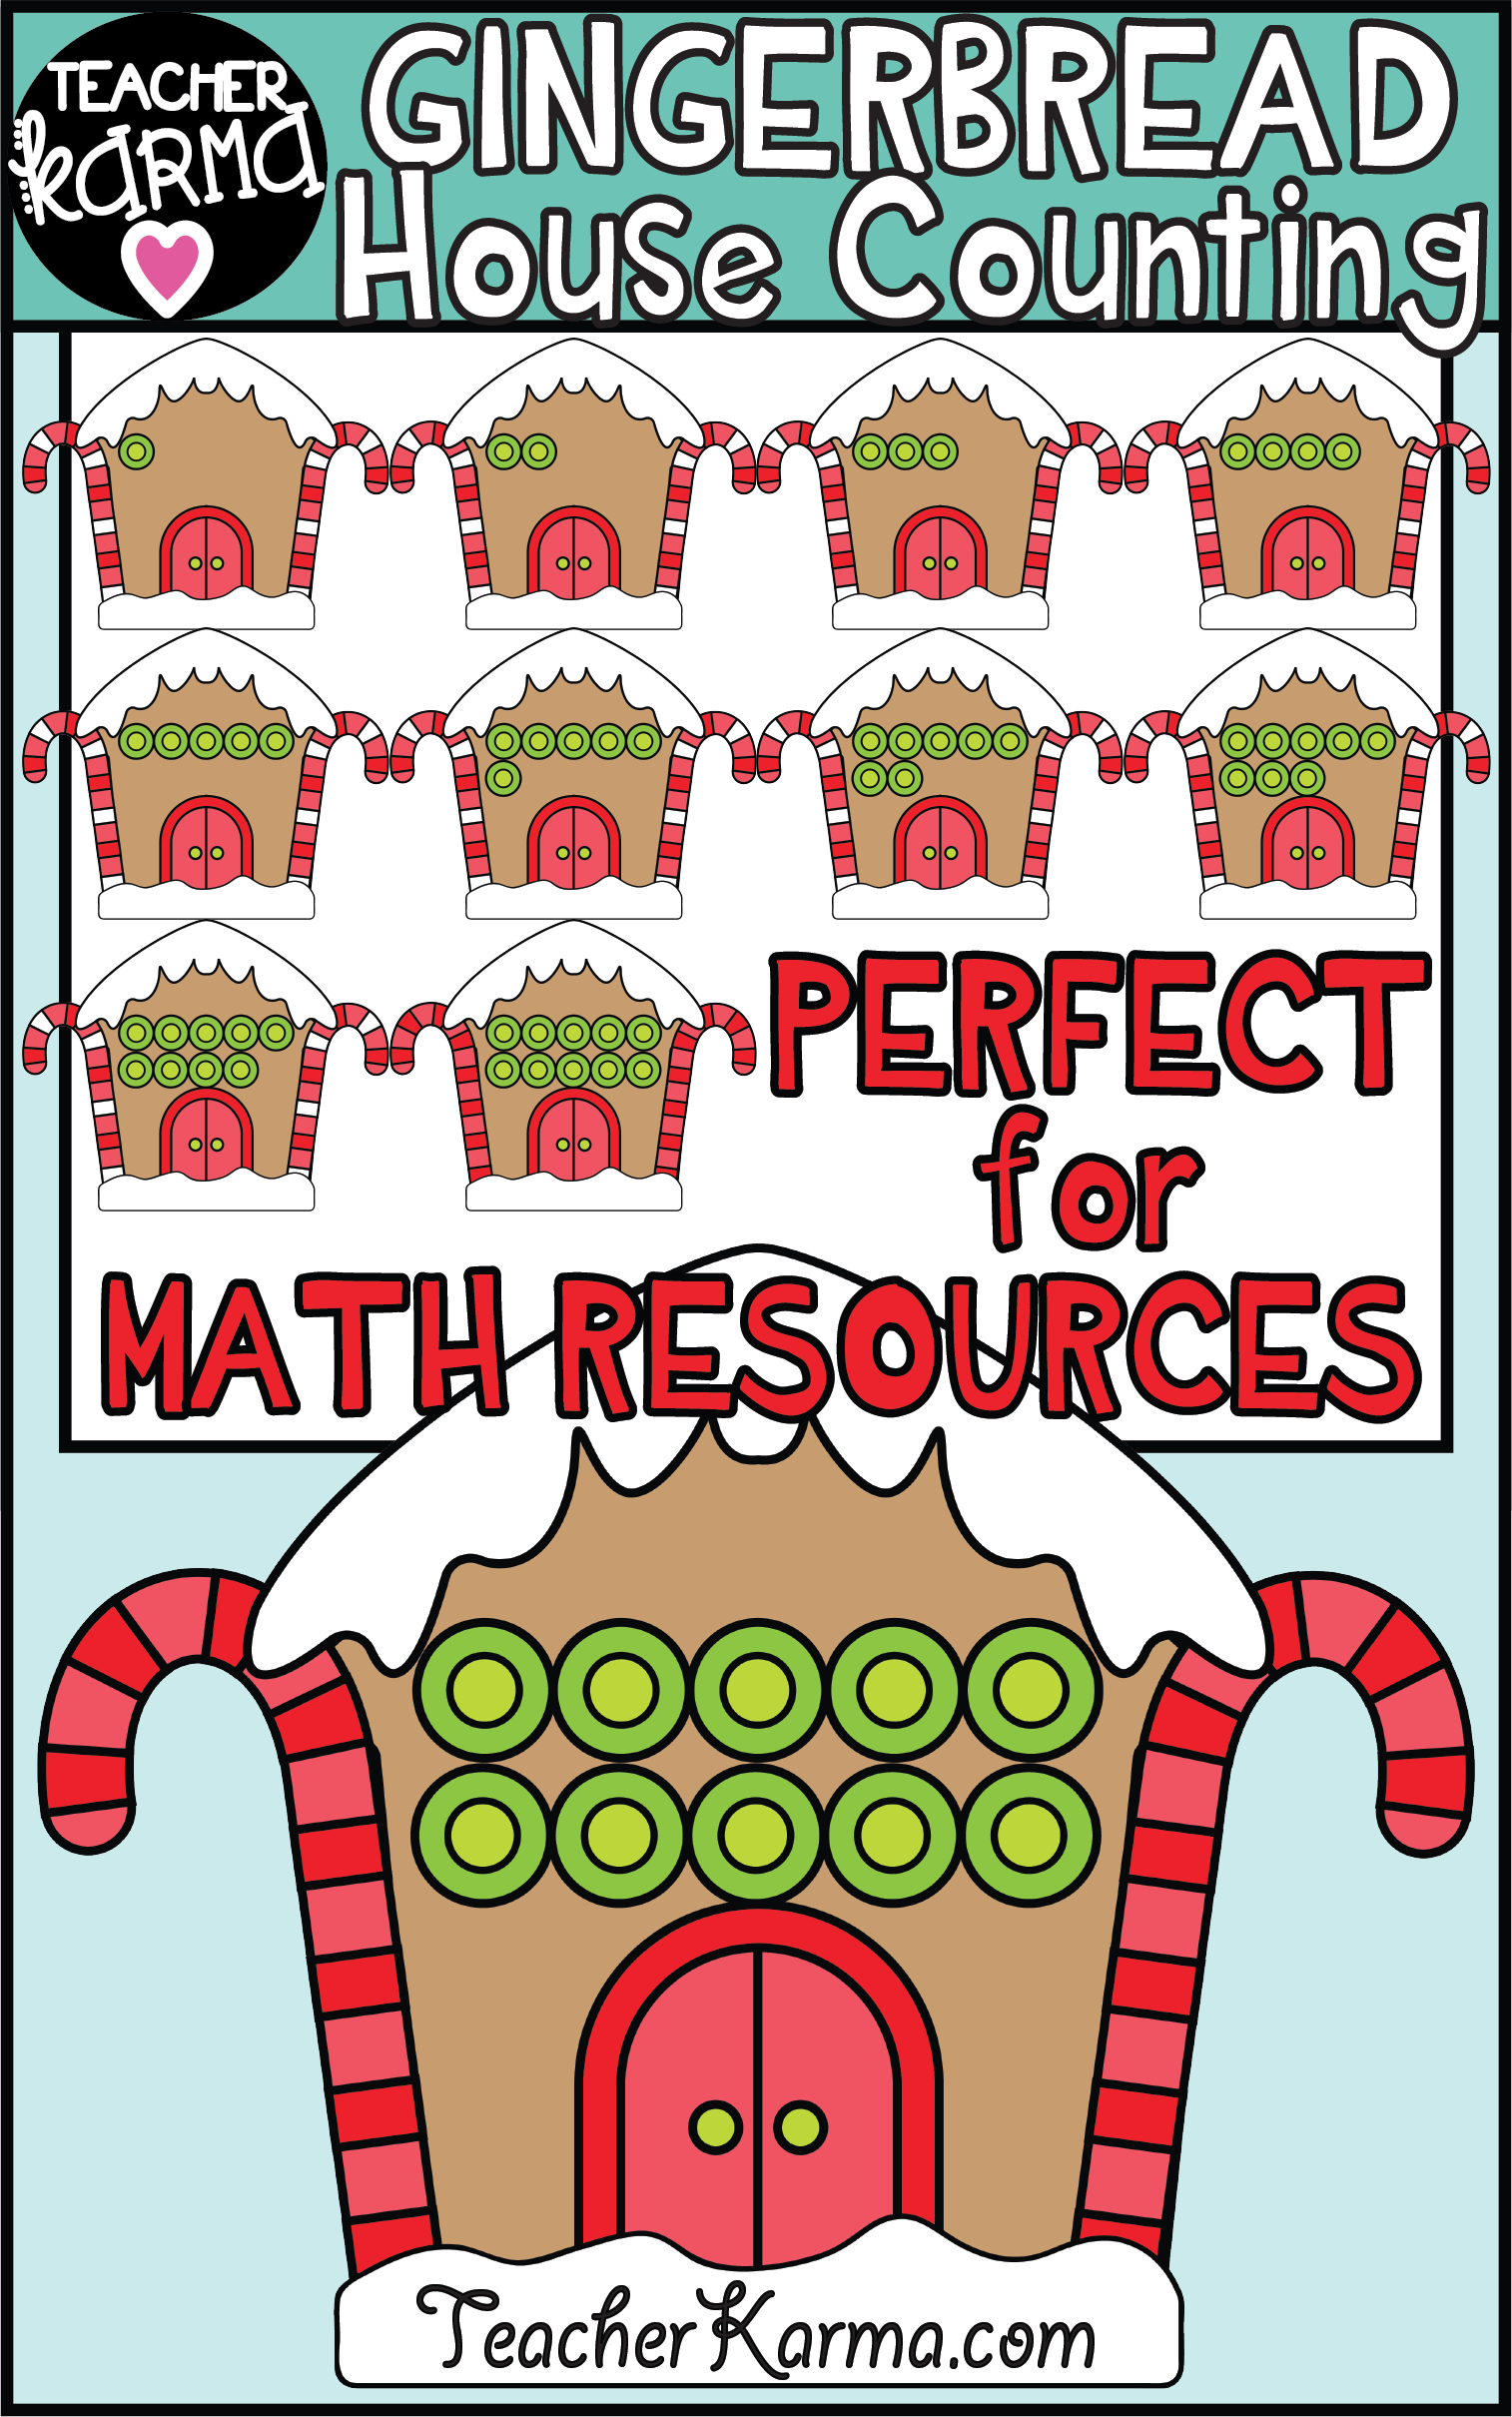 small resolution of gingerbread house math clipart for counting and number sense these graphics are perfect for your math resources this christmas and holiday season